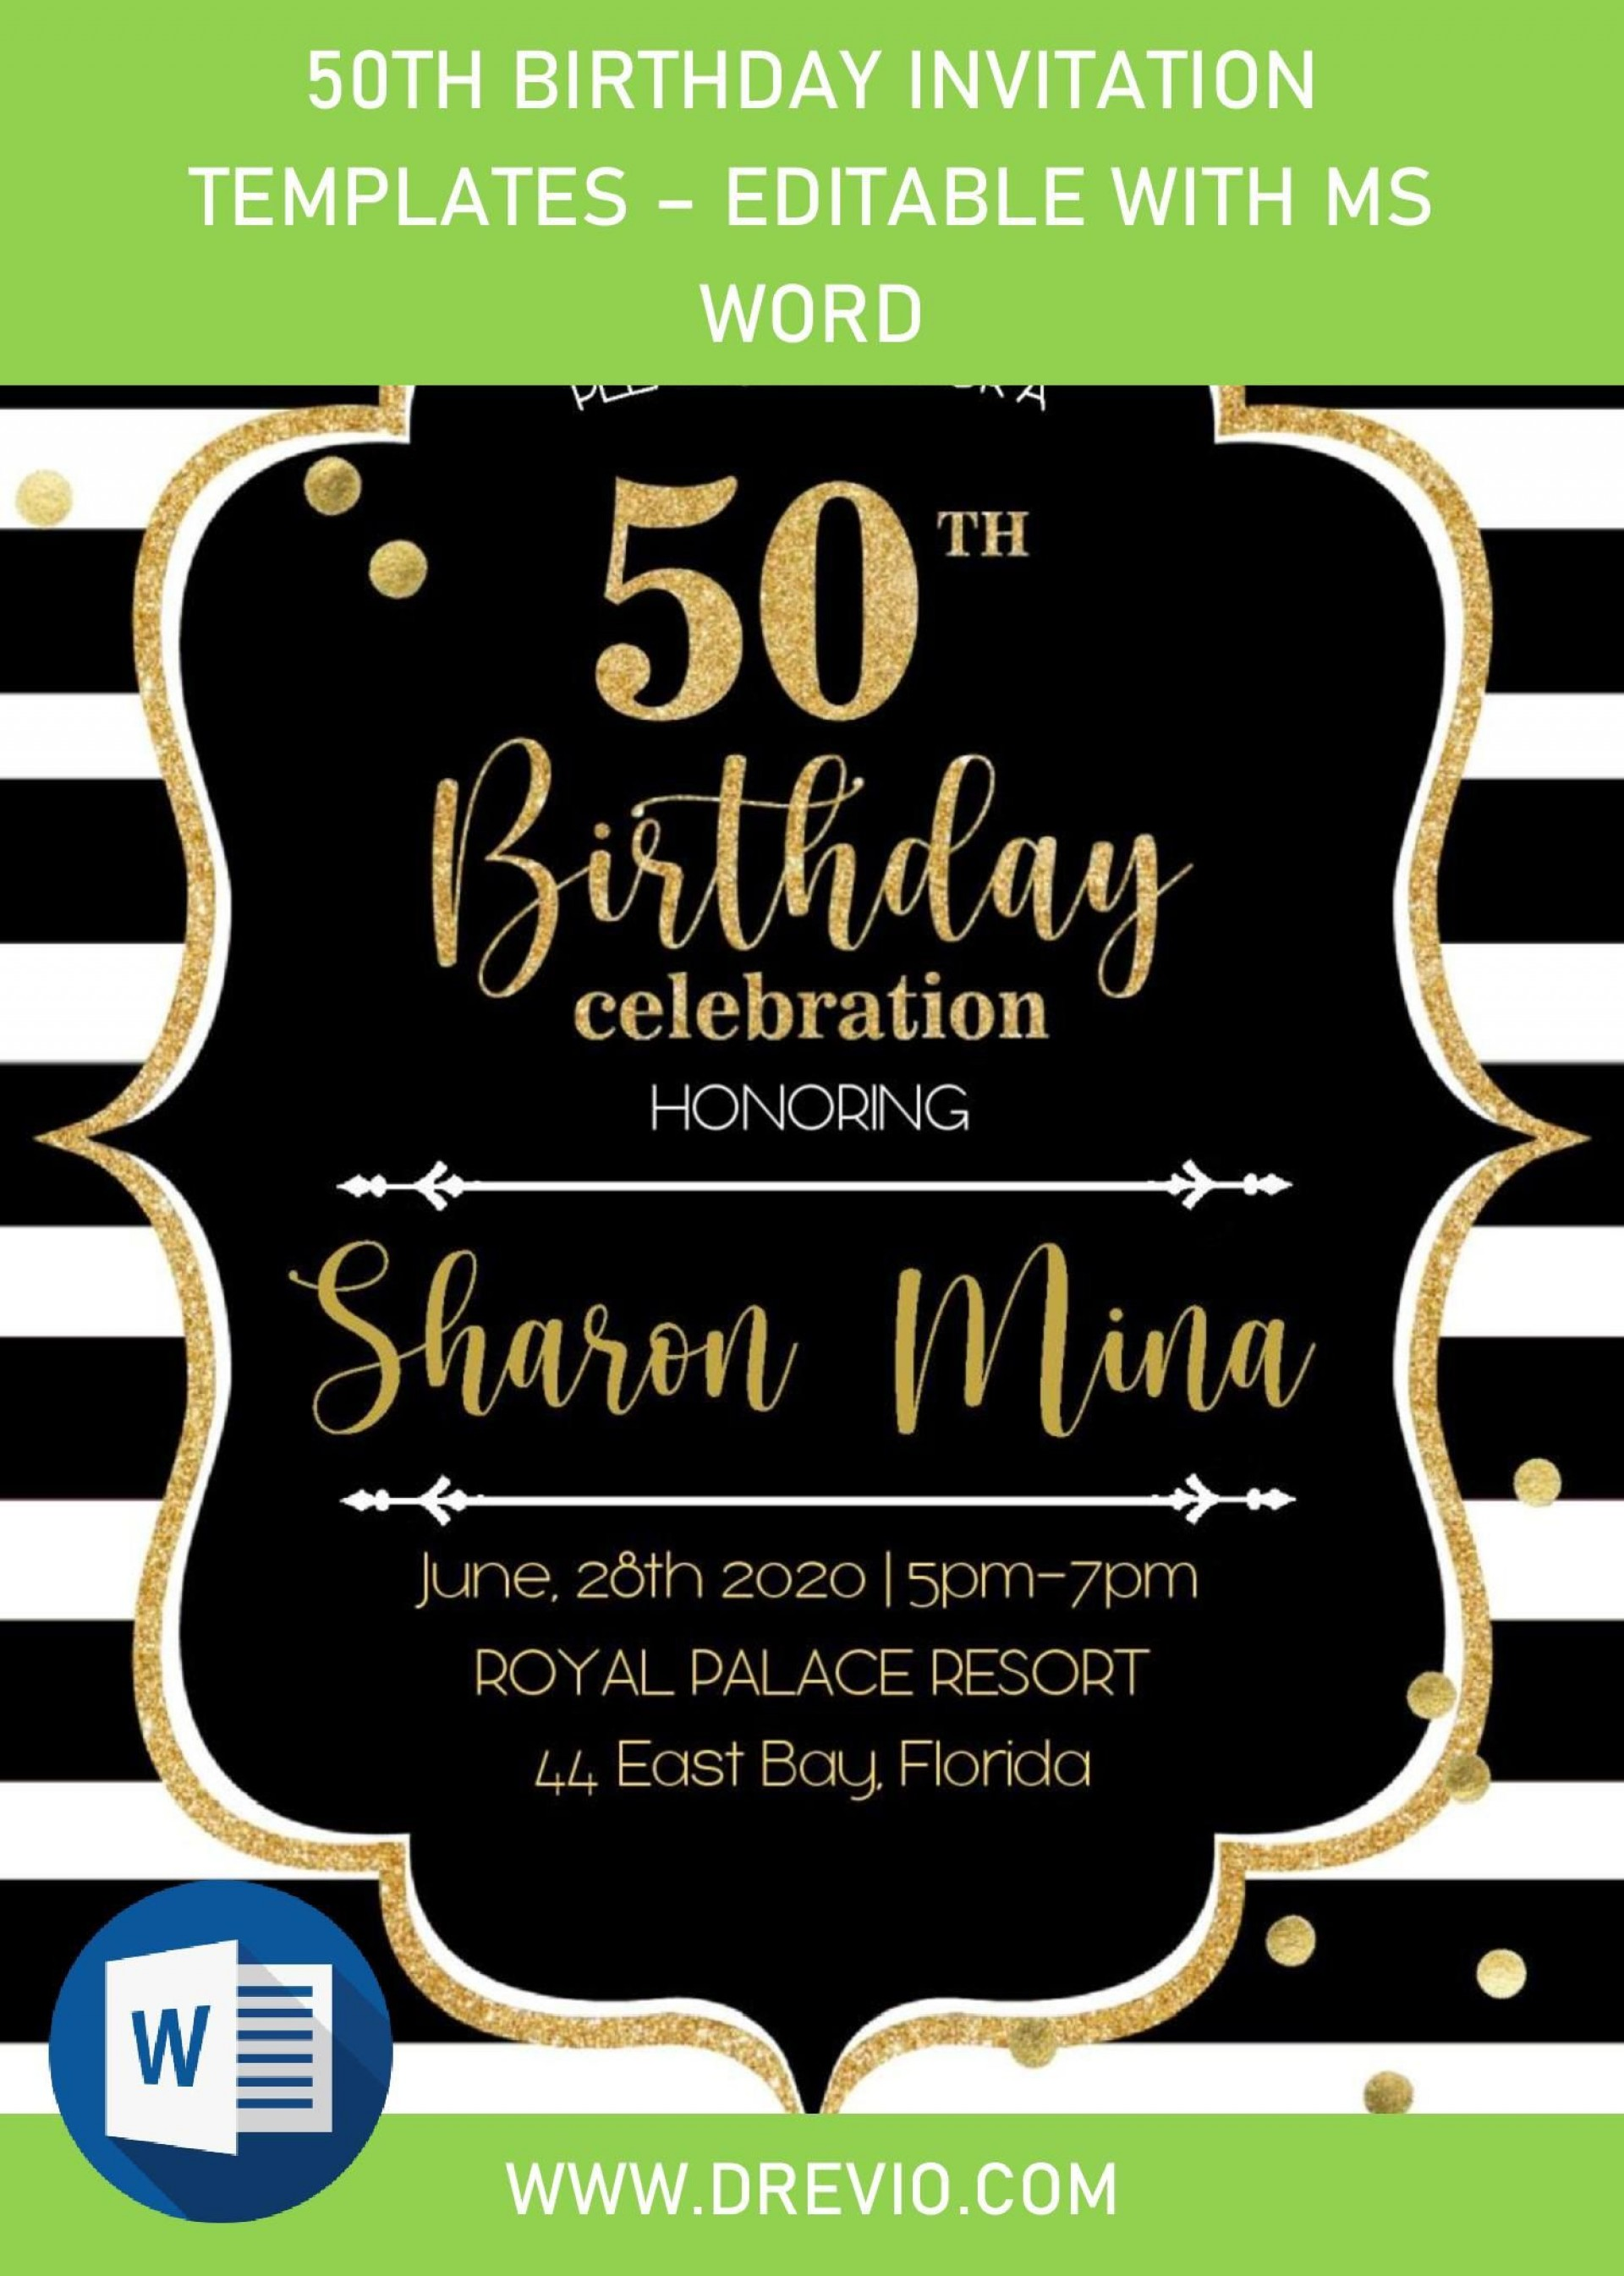 003 Exceptional Birthday Invite Template Word Free Picture  Party Invitation1920